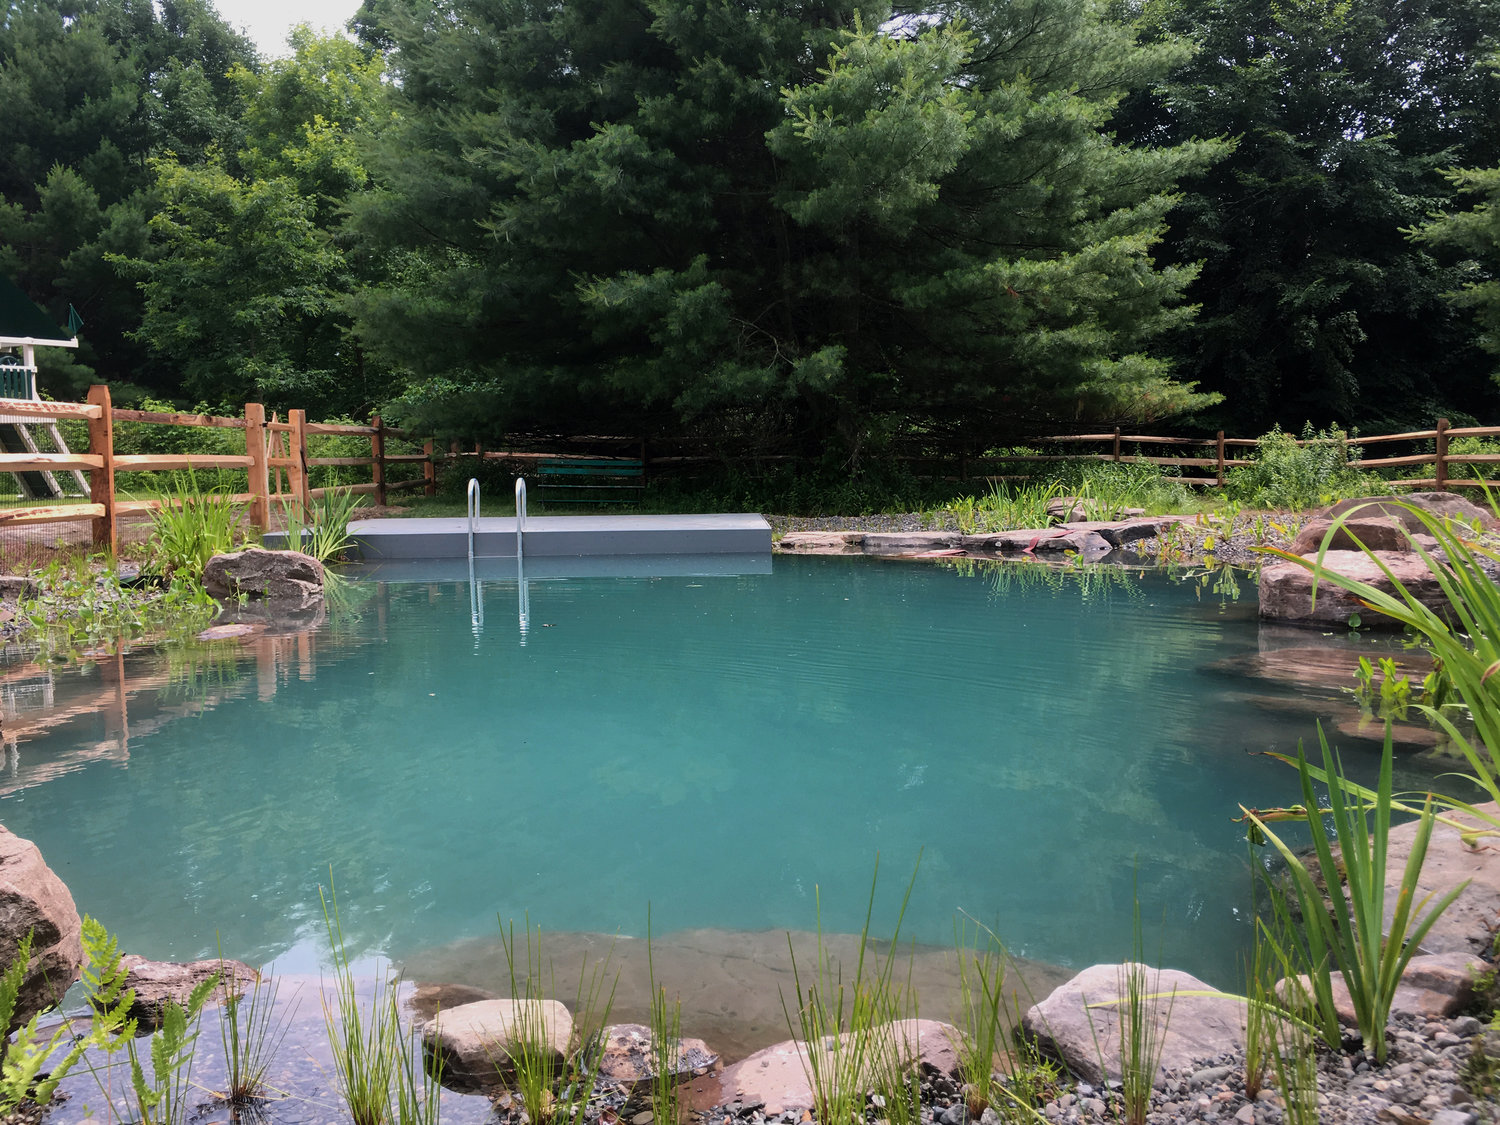 Take a Look at These Awesome Pond Swimming Pool Photos ...